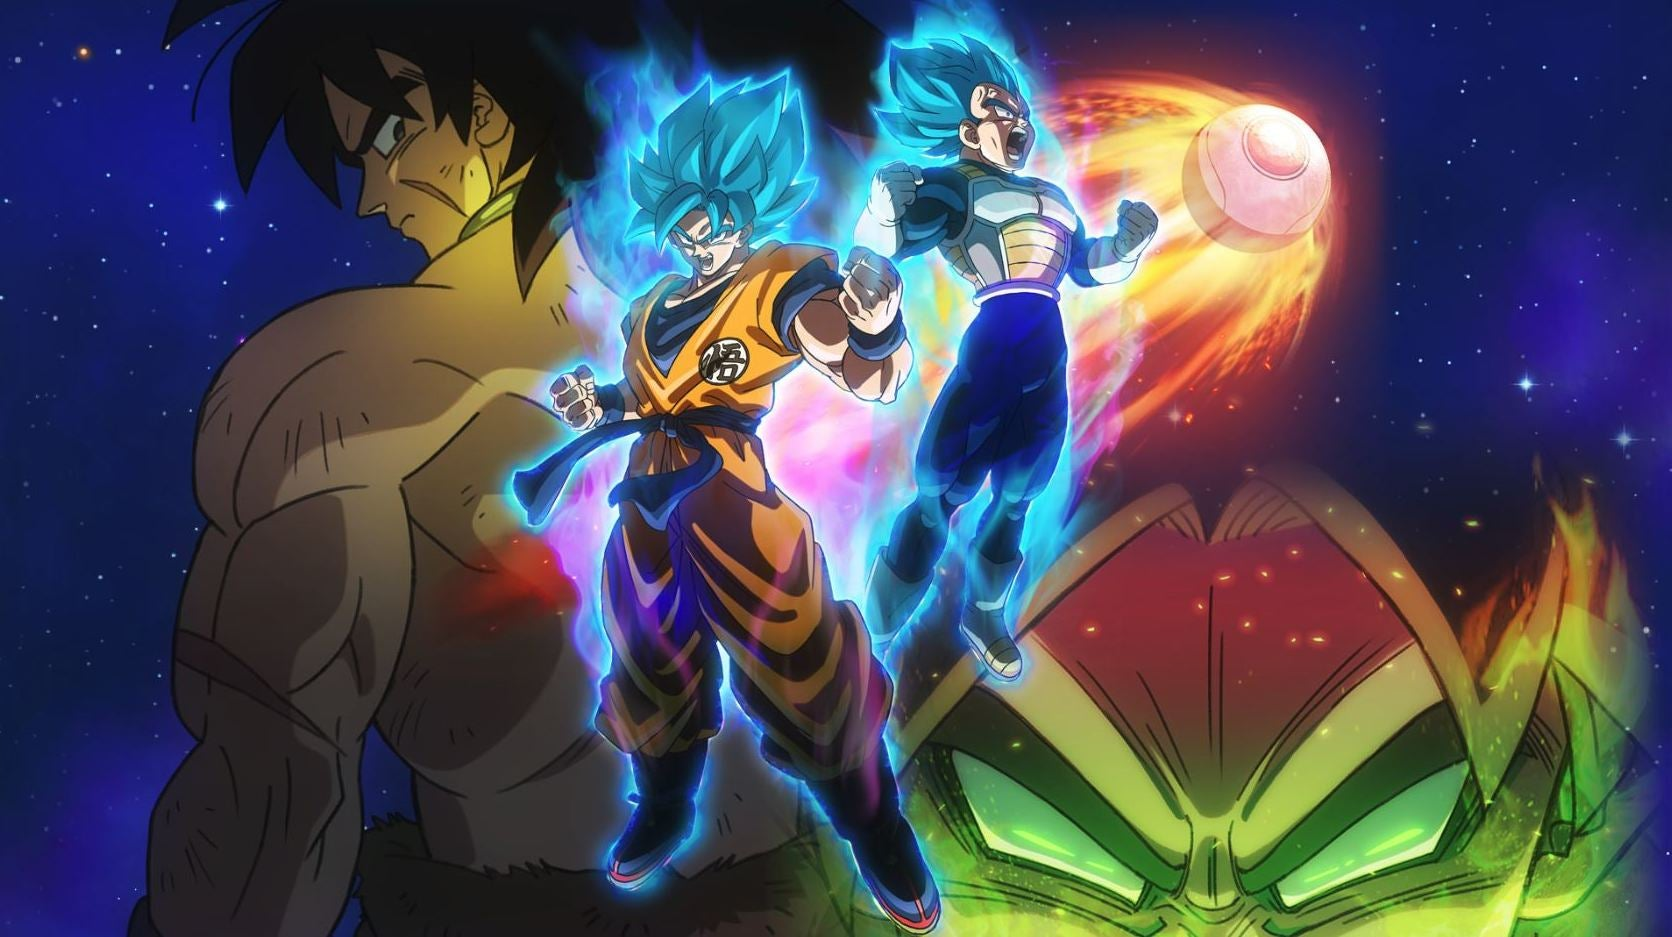 Broly Is Up To His Old Crap Again In New Dragon Ball Super Movie